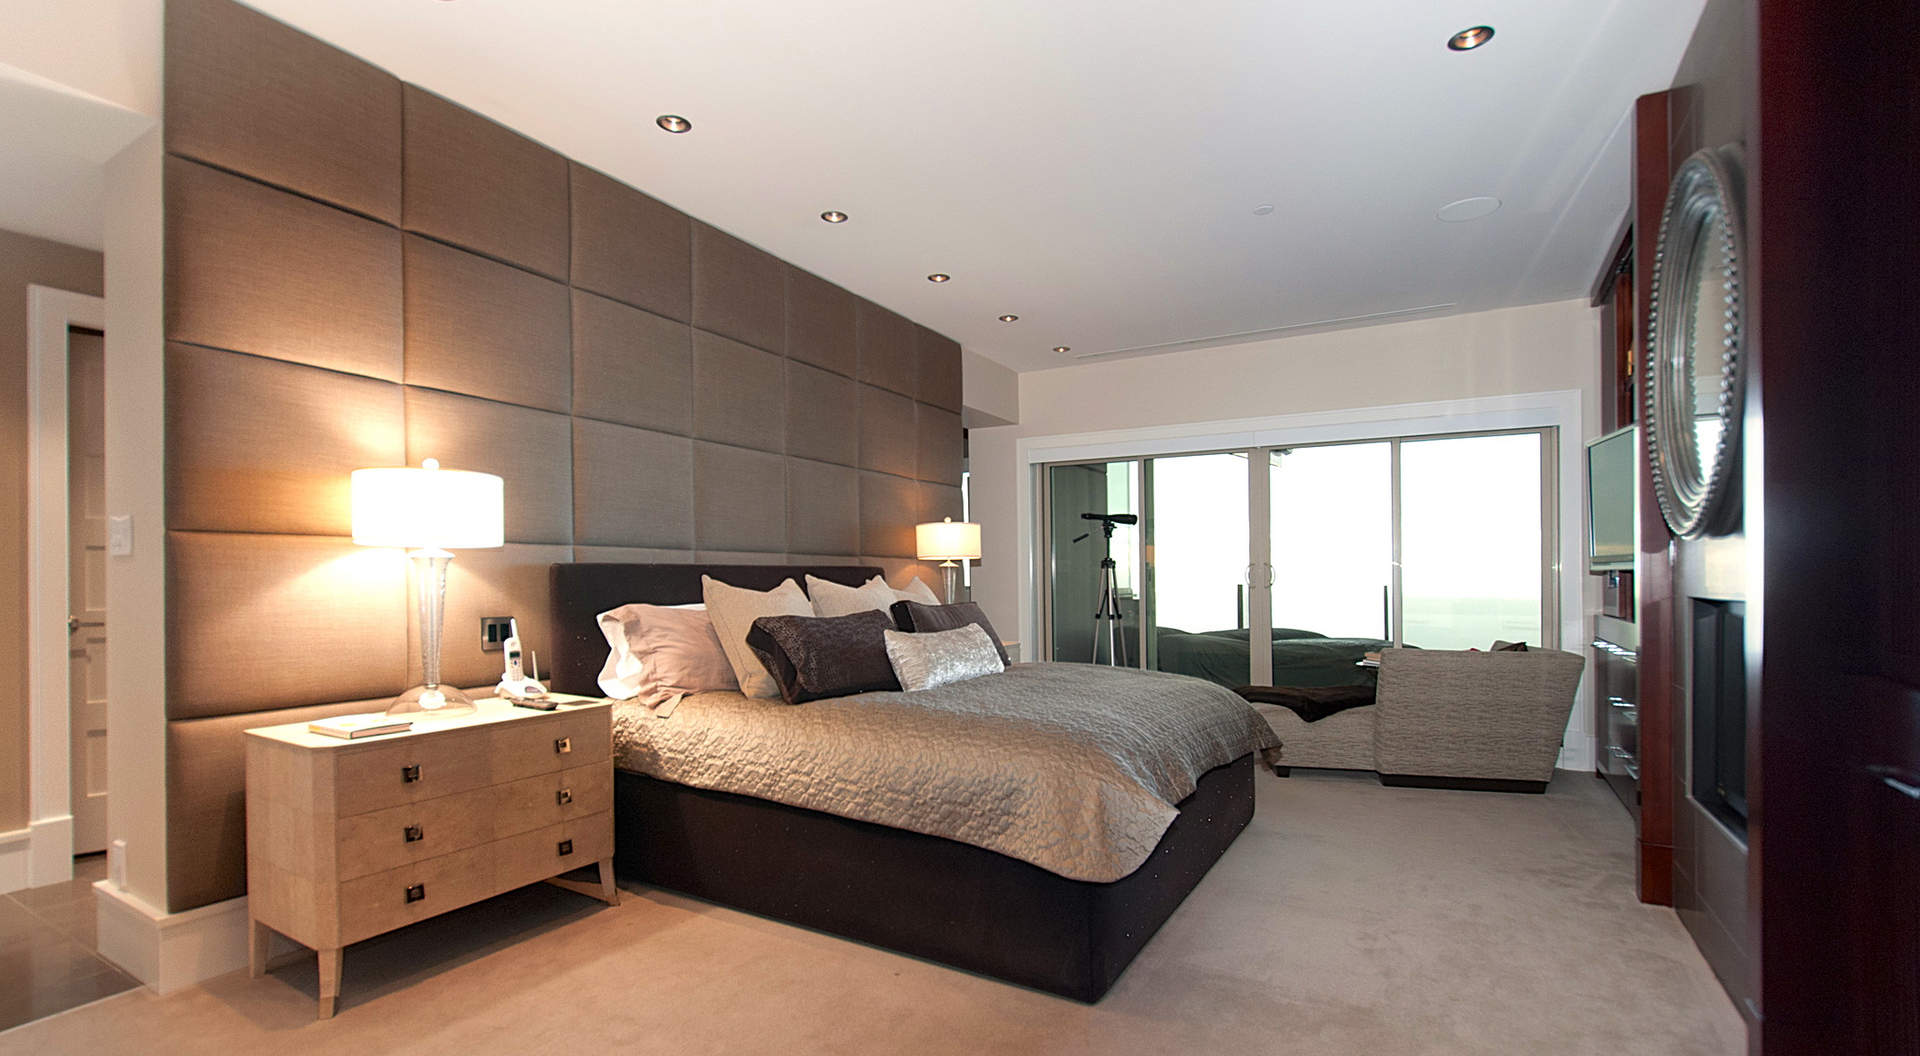 Penthouse master bedroom interior design ideas for Master bedrooms